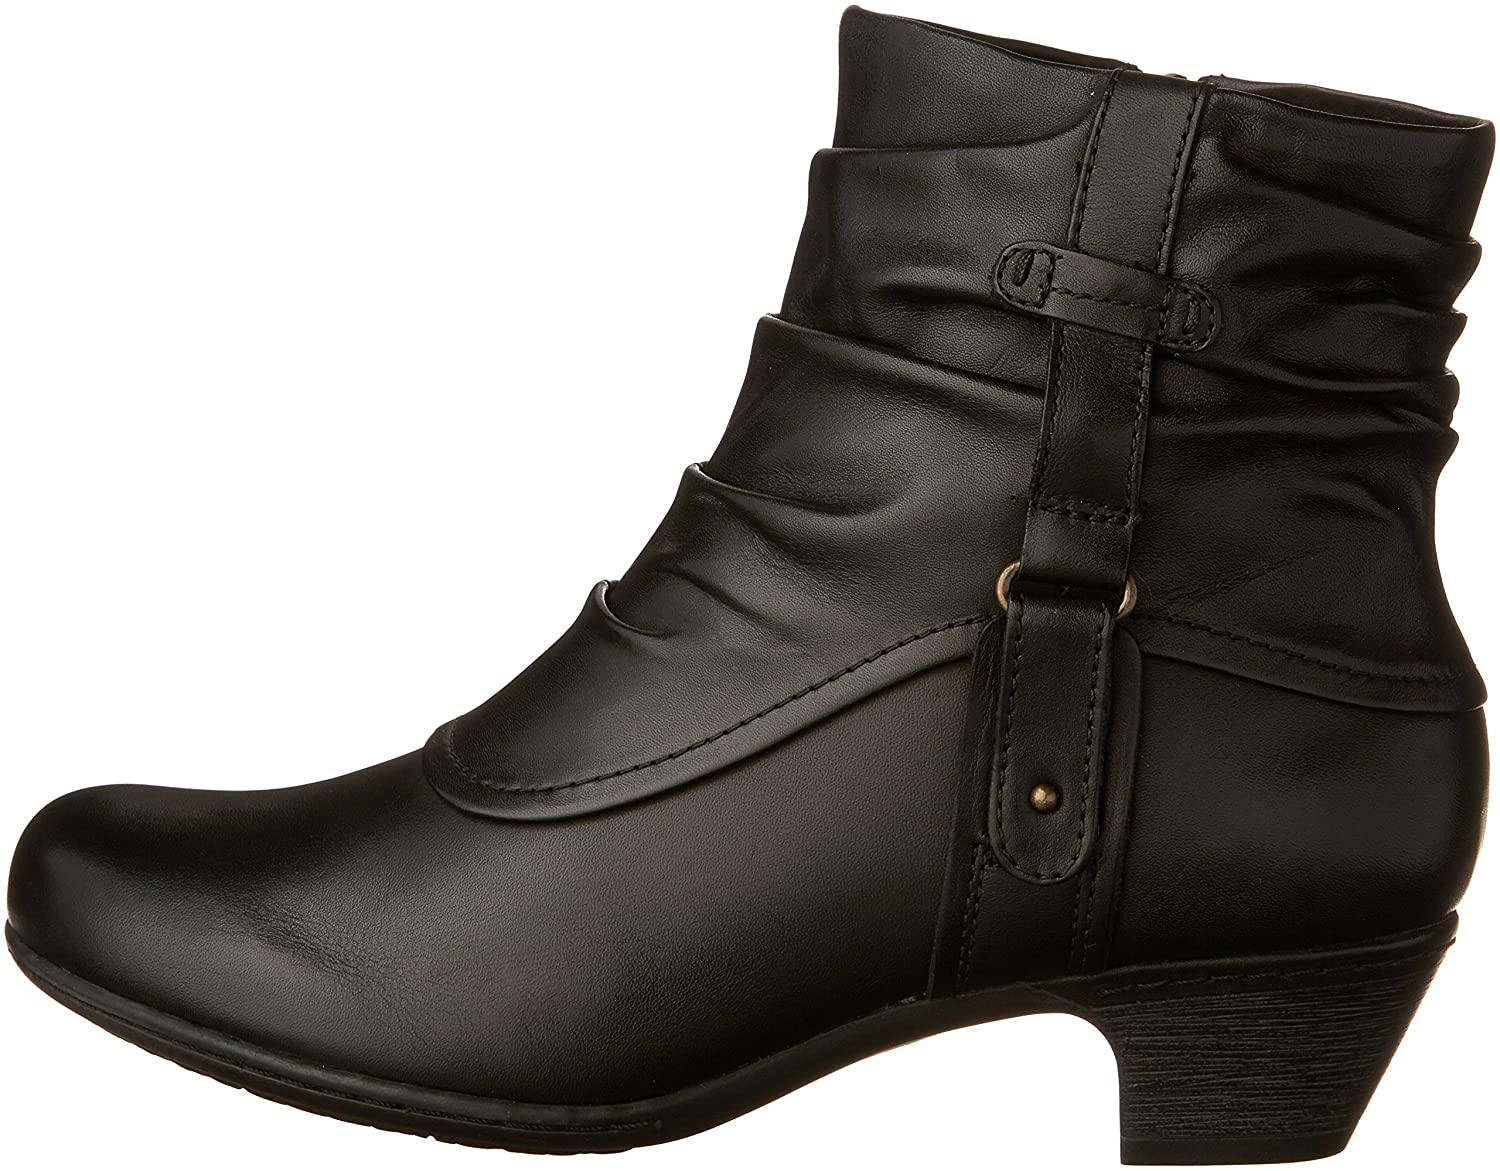 Cobb Hill Rockport Women's Alexandra Boot B00B9FV3FG 7.5 C/D US|Black